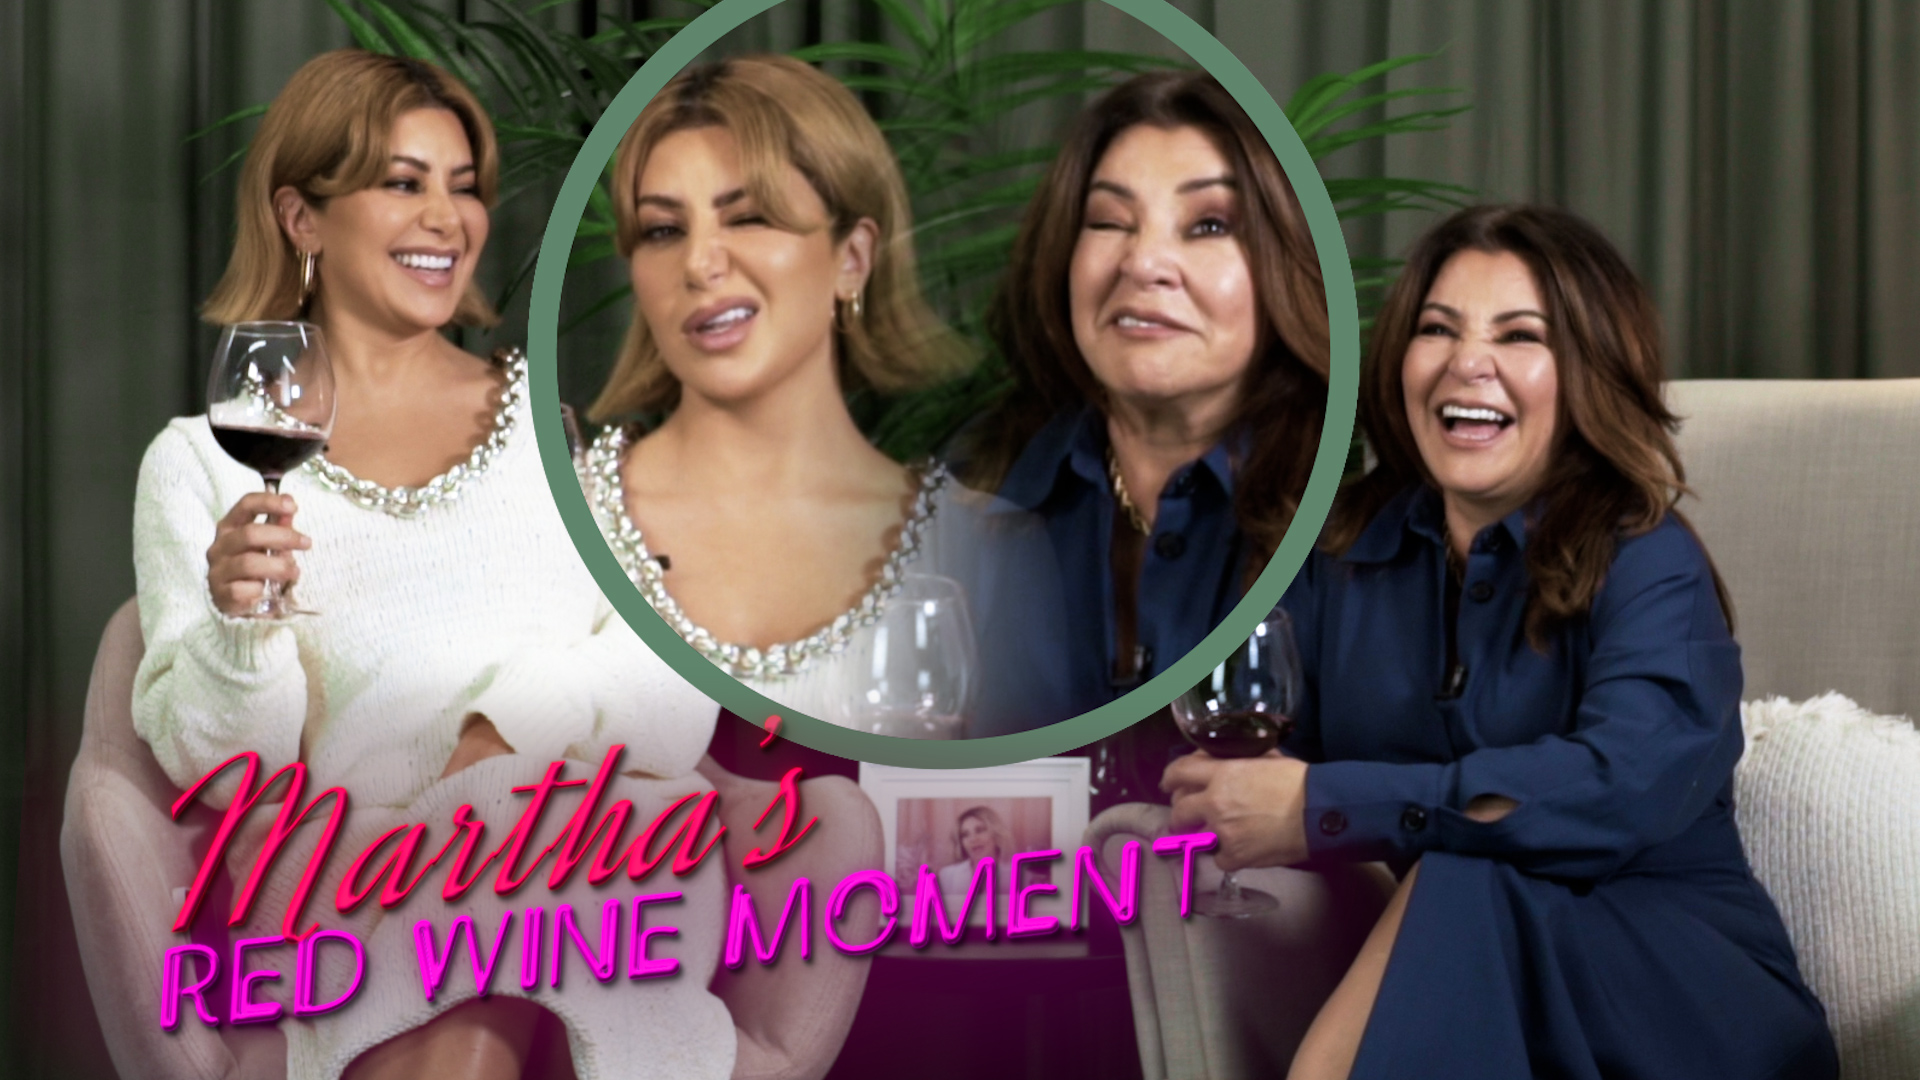 Martha's Red Wine Moment from Dinner Party #4, Season 8